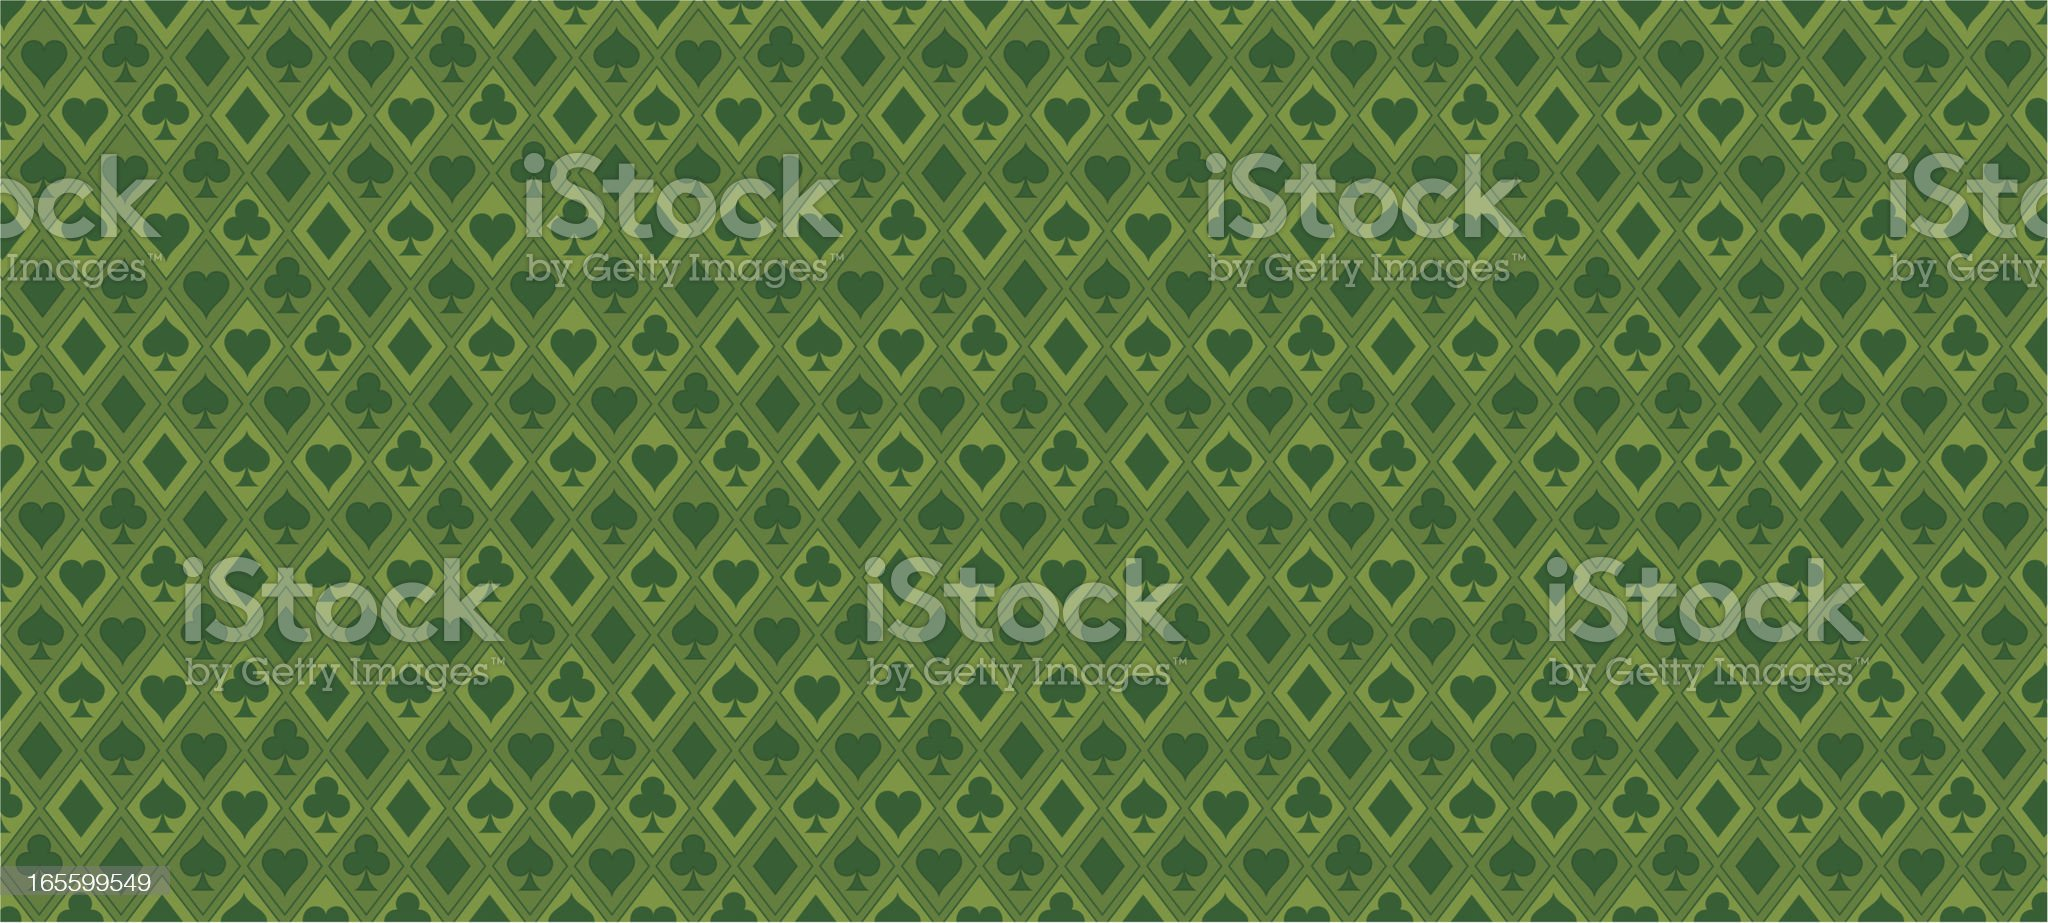 Wallpaper - Poker royalty-free stock vector art